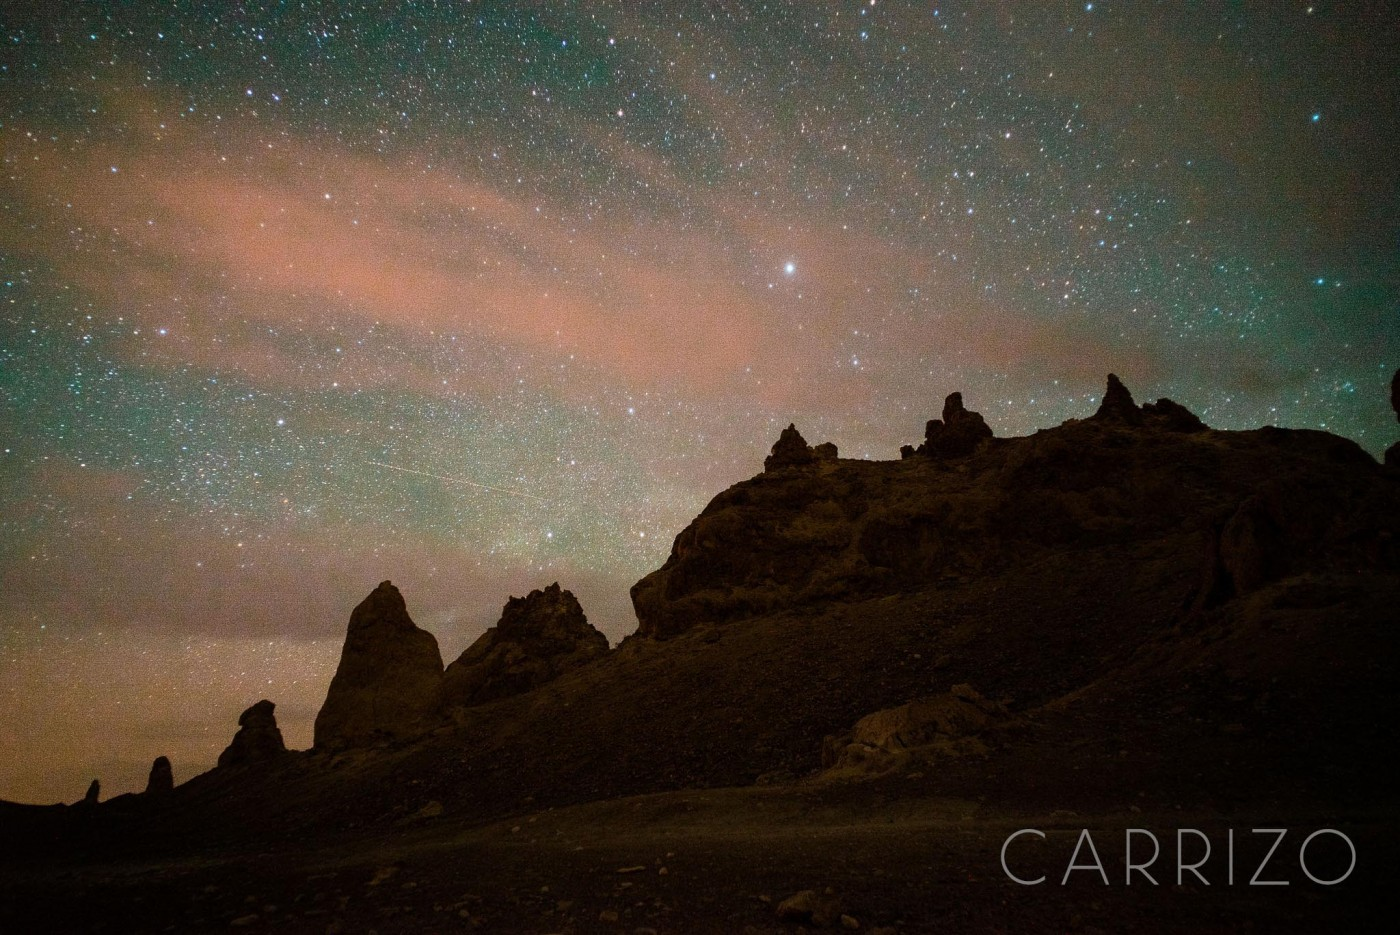 carrizo-milky-way-astrophotography-lonely-speck-lightroom-preset-1